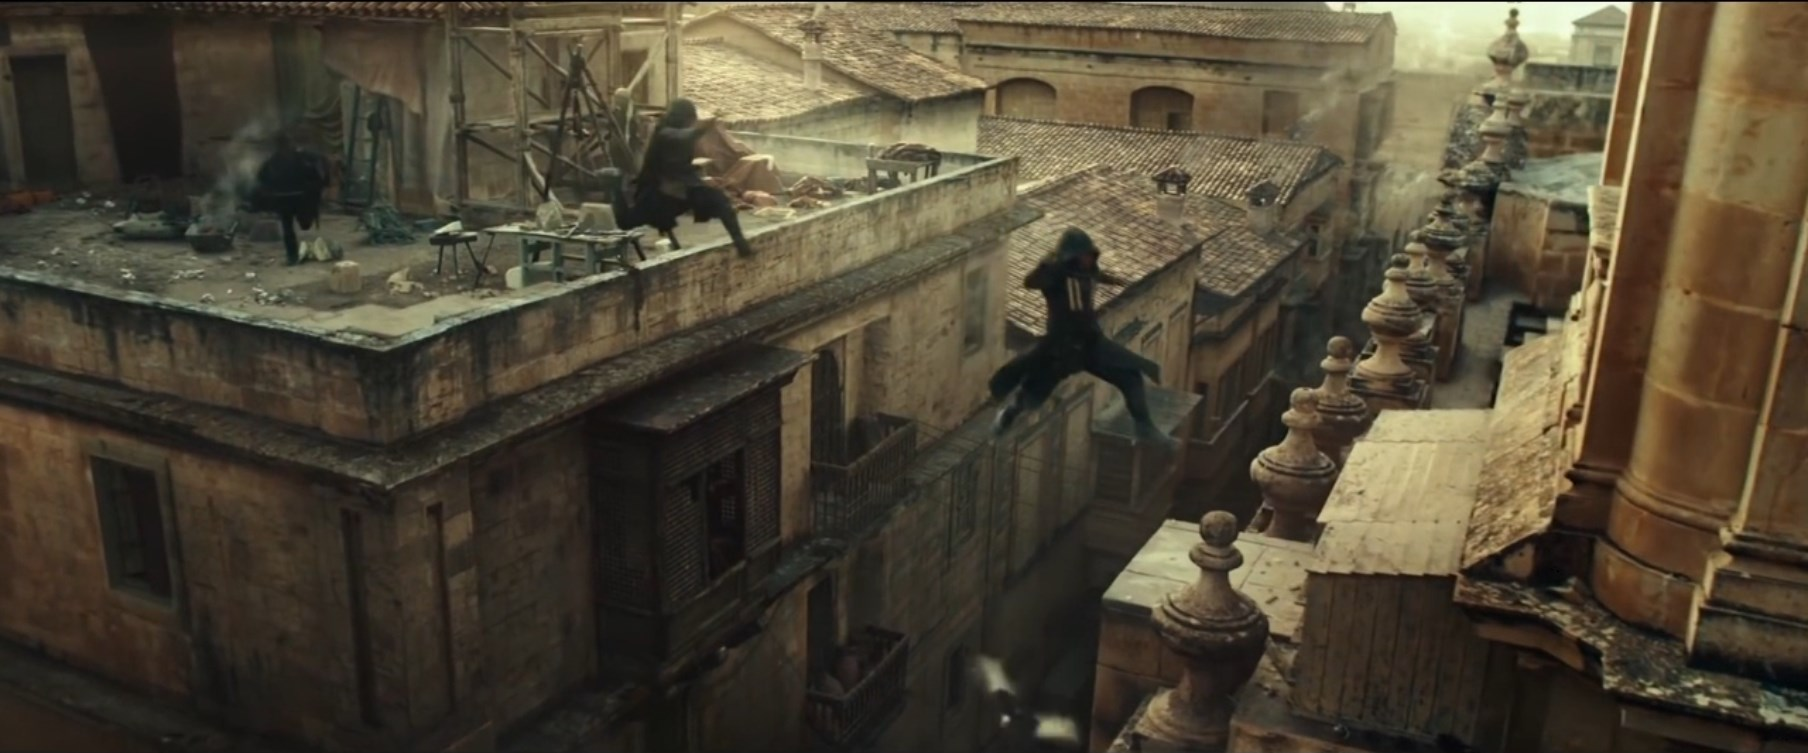 Assassins Creed - FIlm